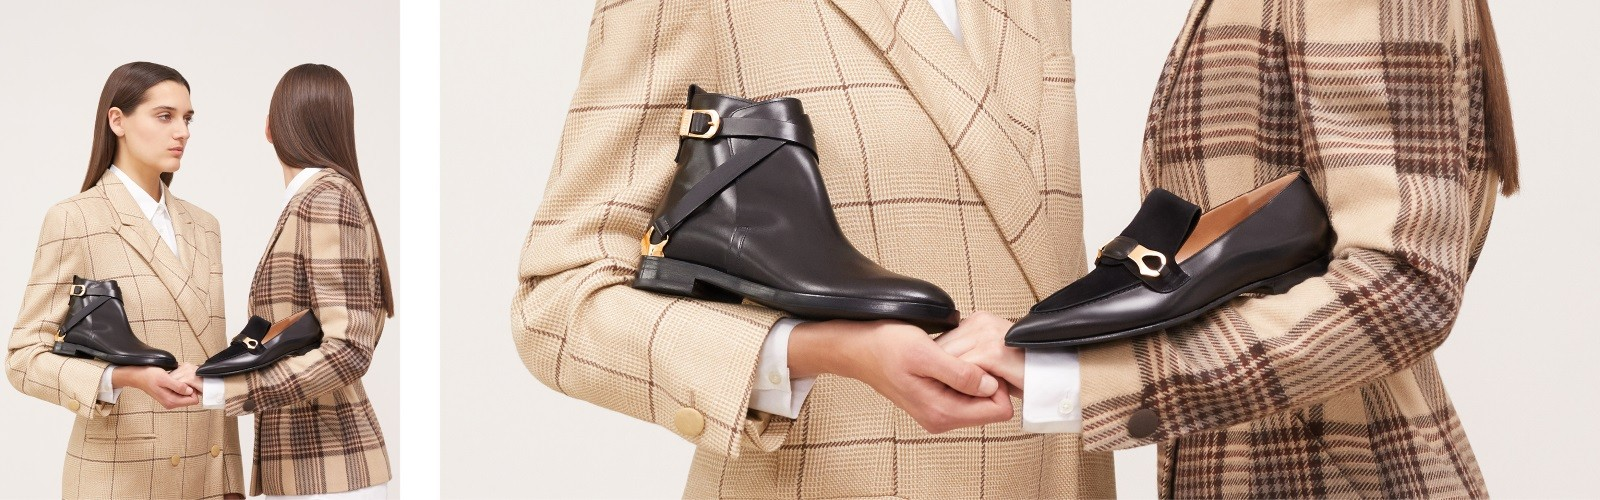 FW19-20 WOMEN COLLECTION